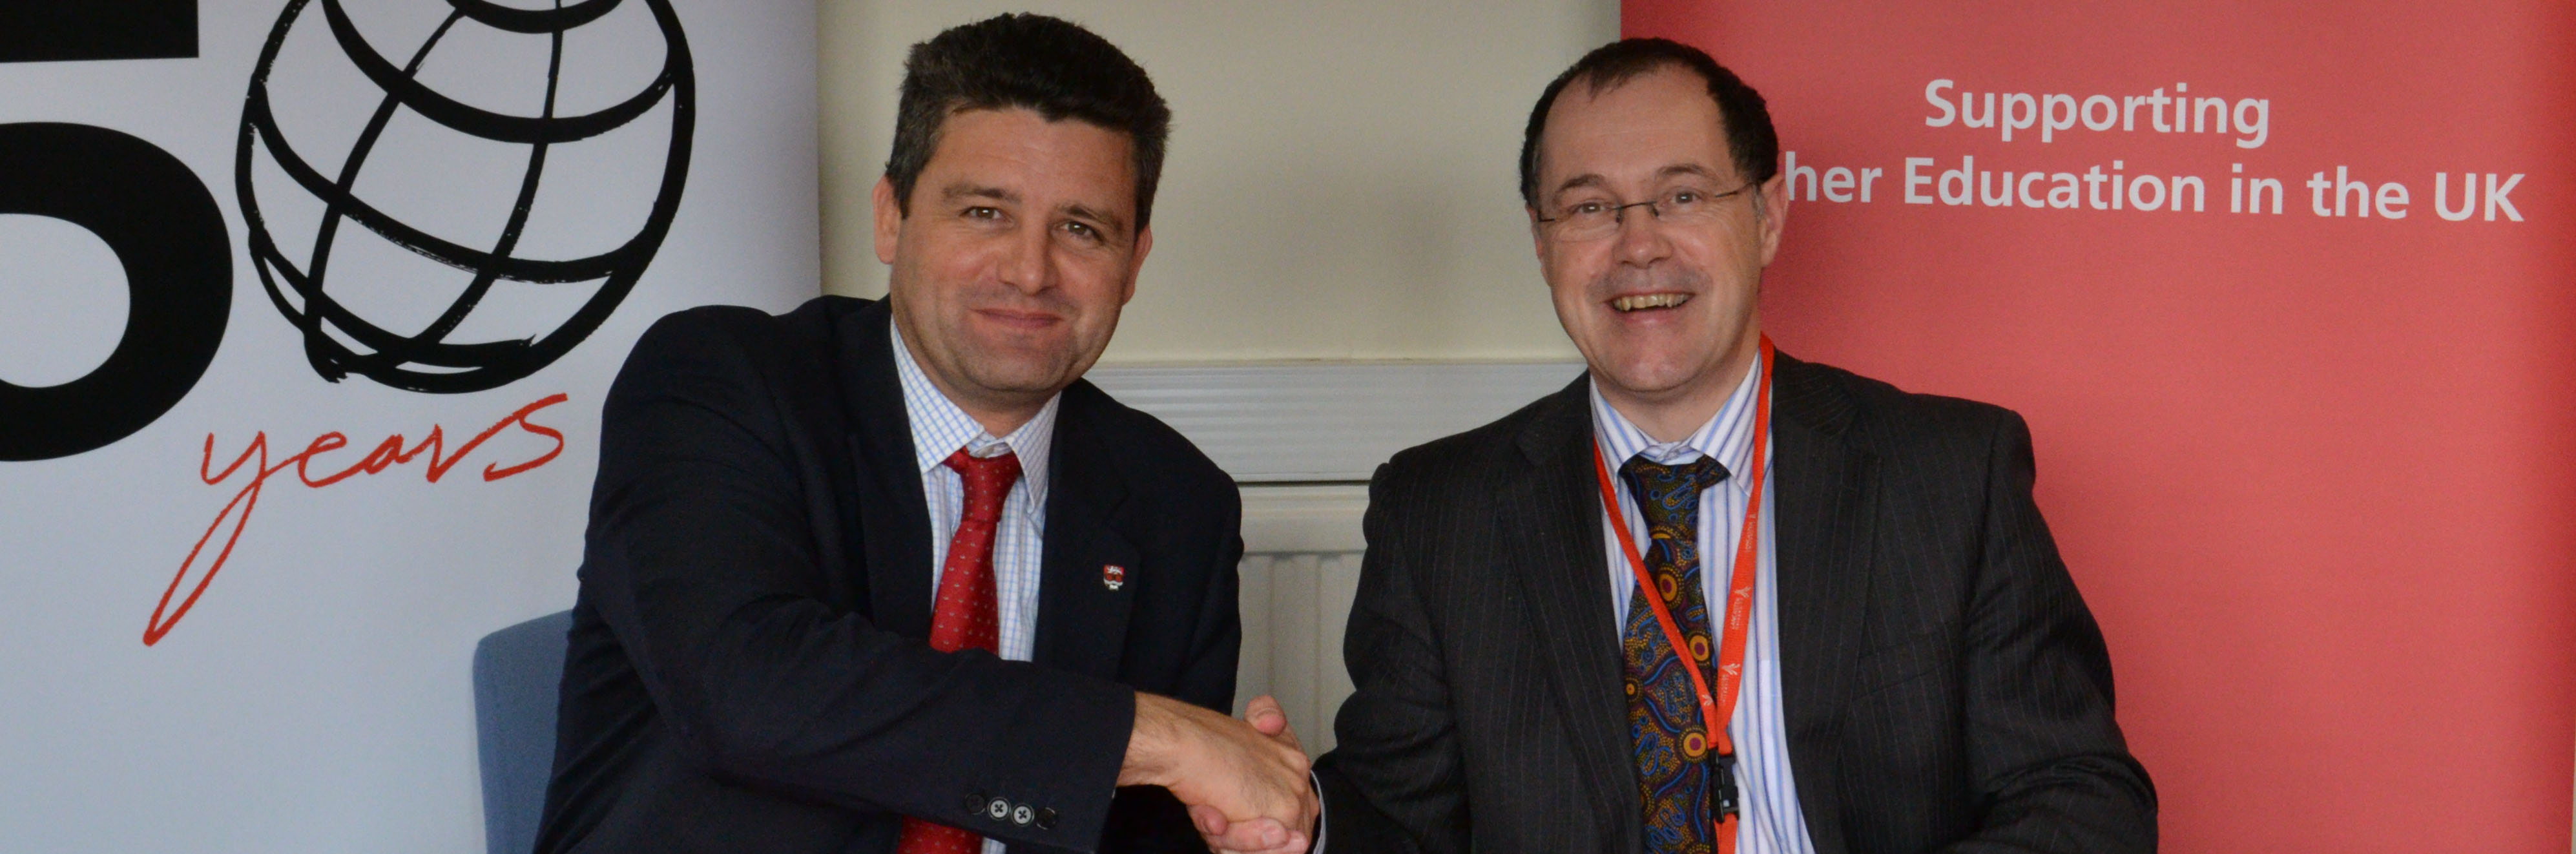 Simon Bray, Director of Santander Universities UK, and Professor Mark E Smith, Vice-Chancellor